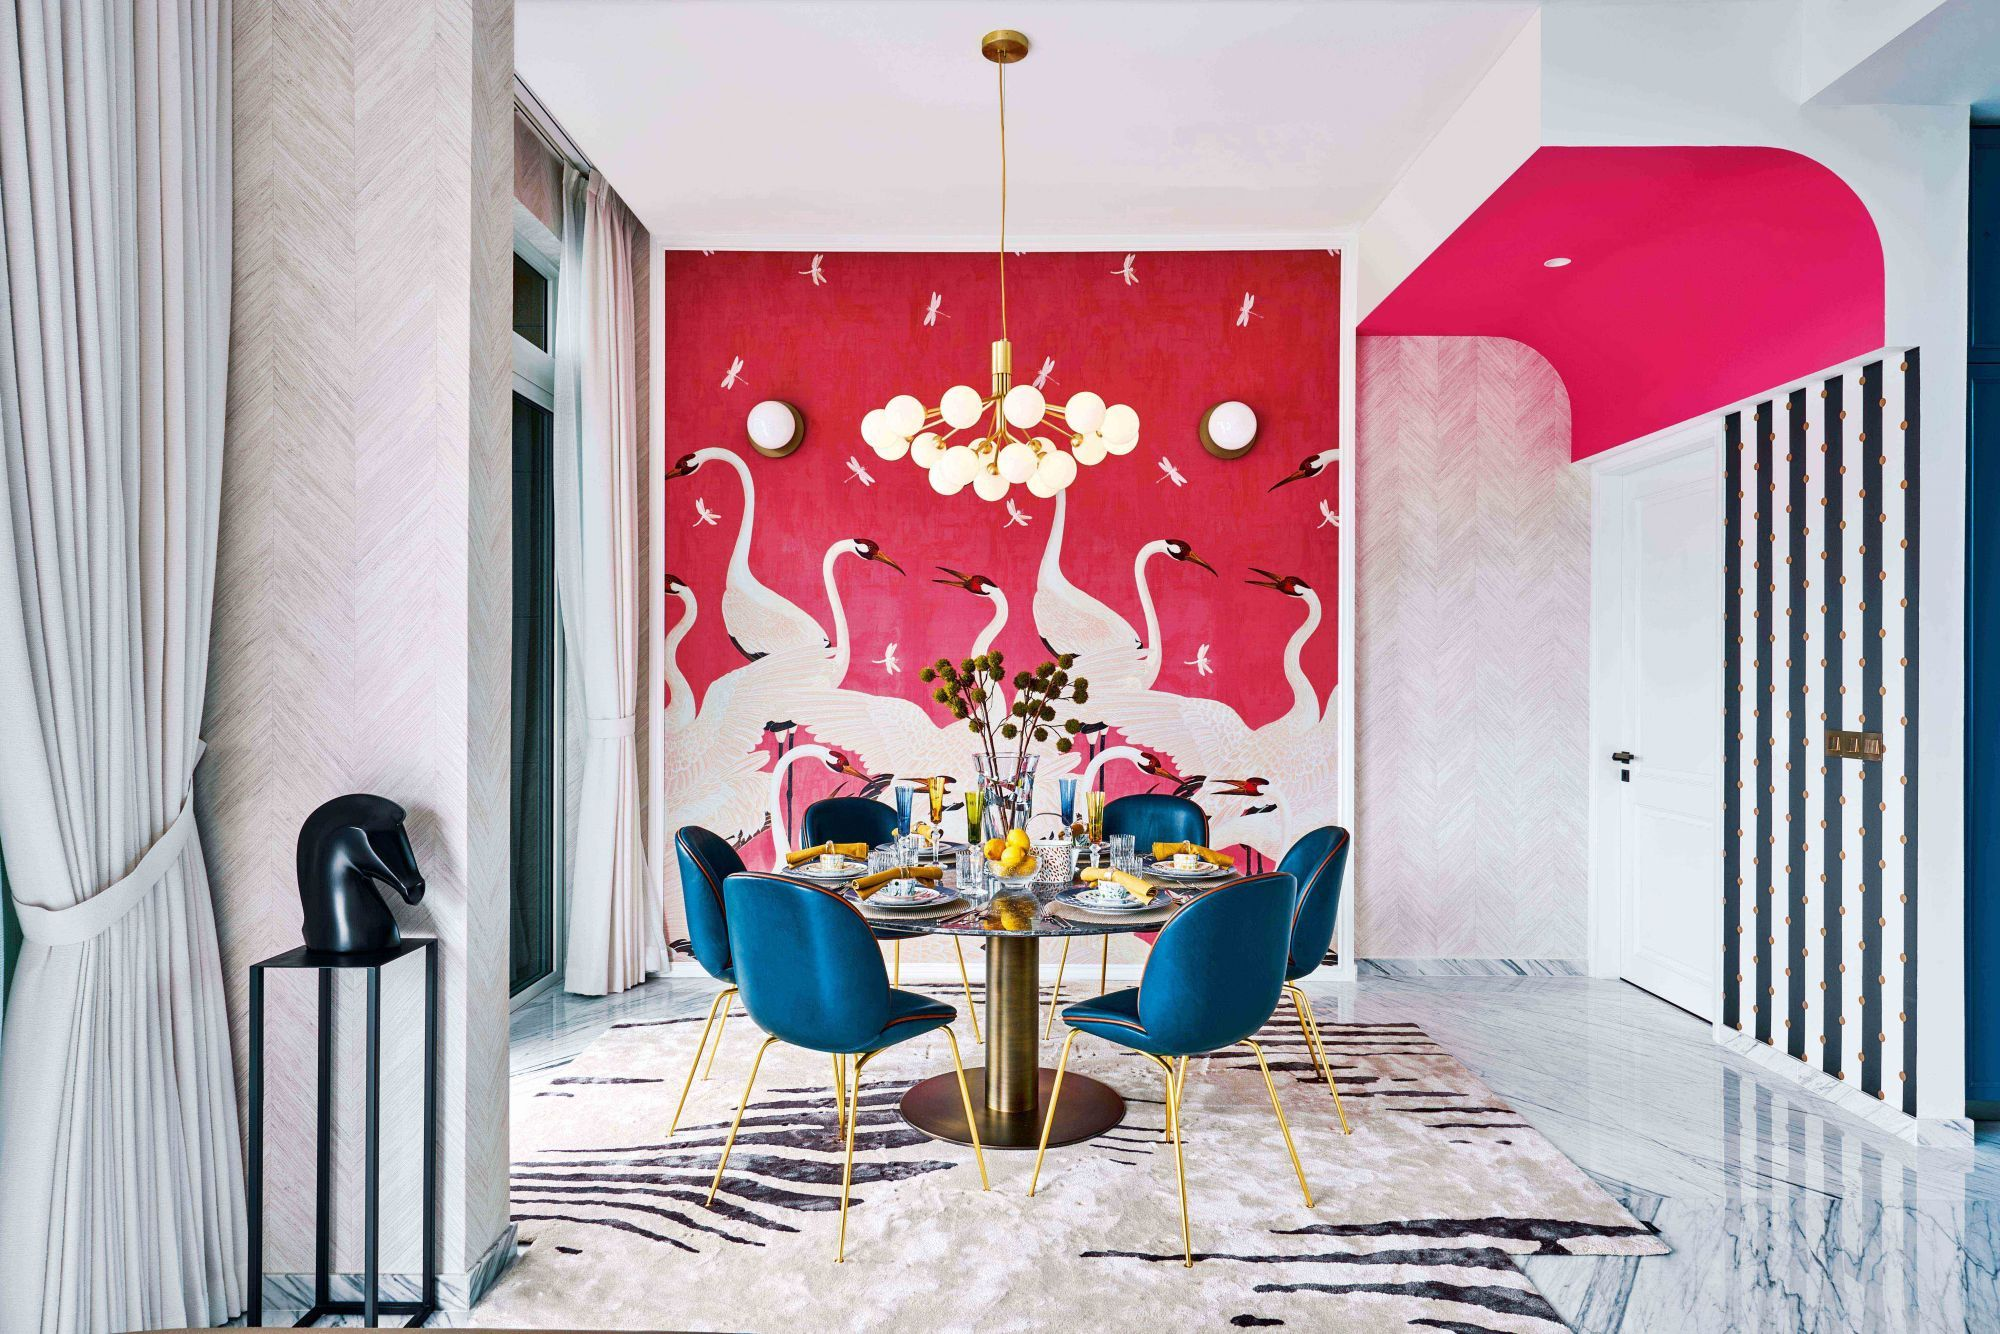 Home Tour: A Pink Gucci Wallpaper Is The Focal Point Of This Travel-Themed Apartment